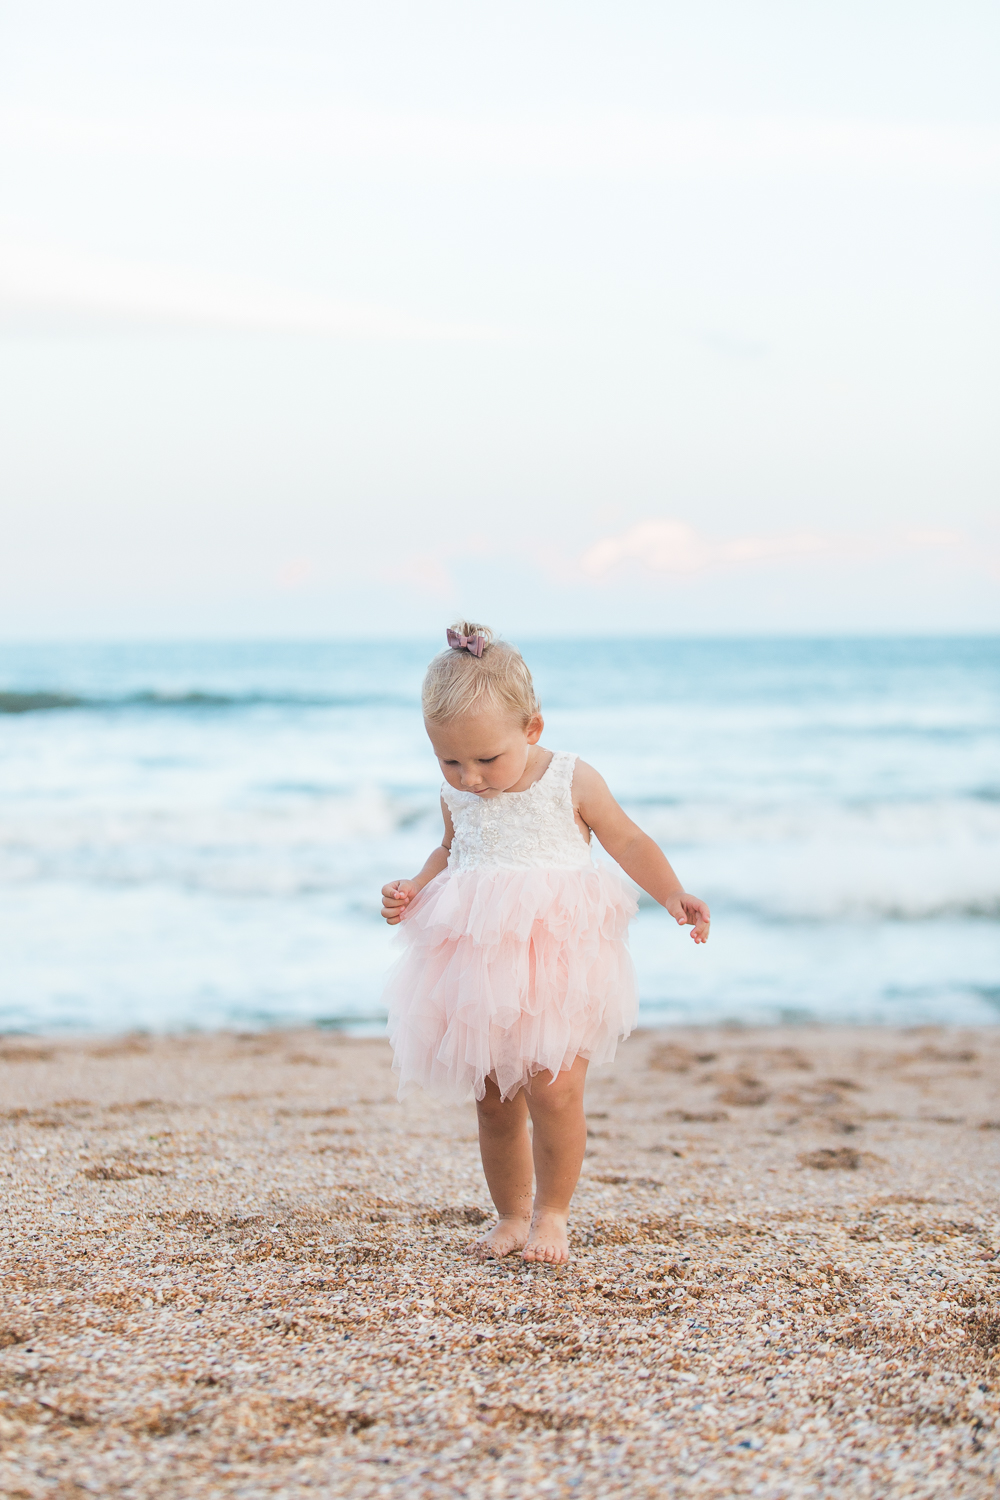 Lace dress with pink ruffles